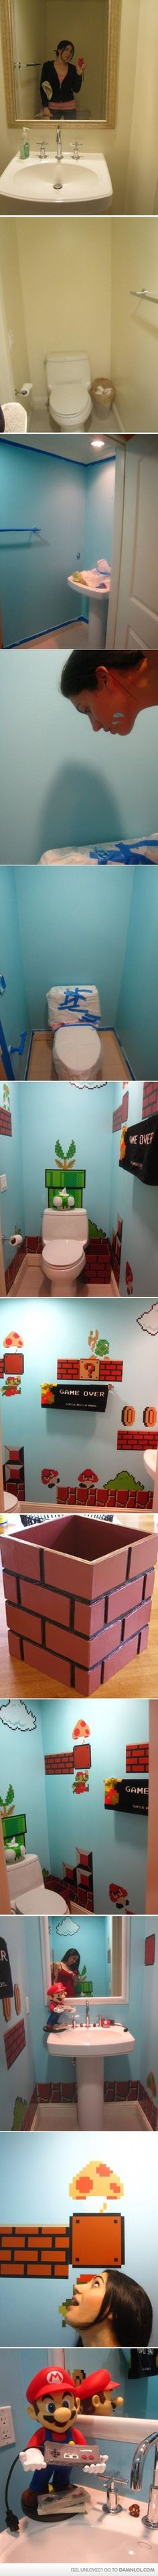 Coolest bathroom ever.